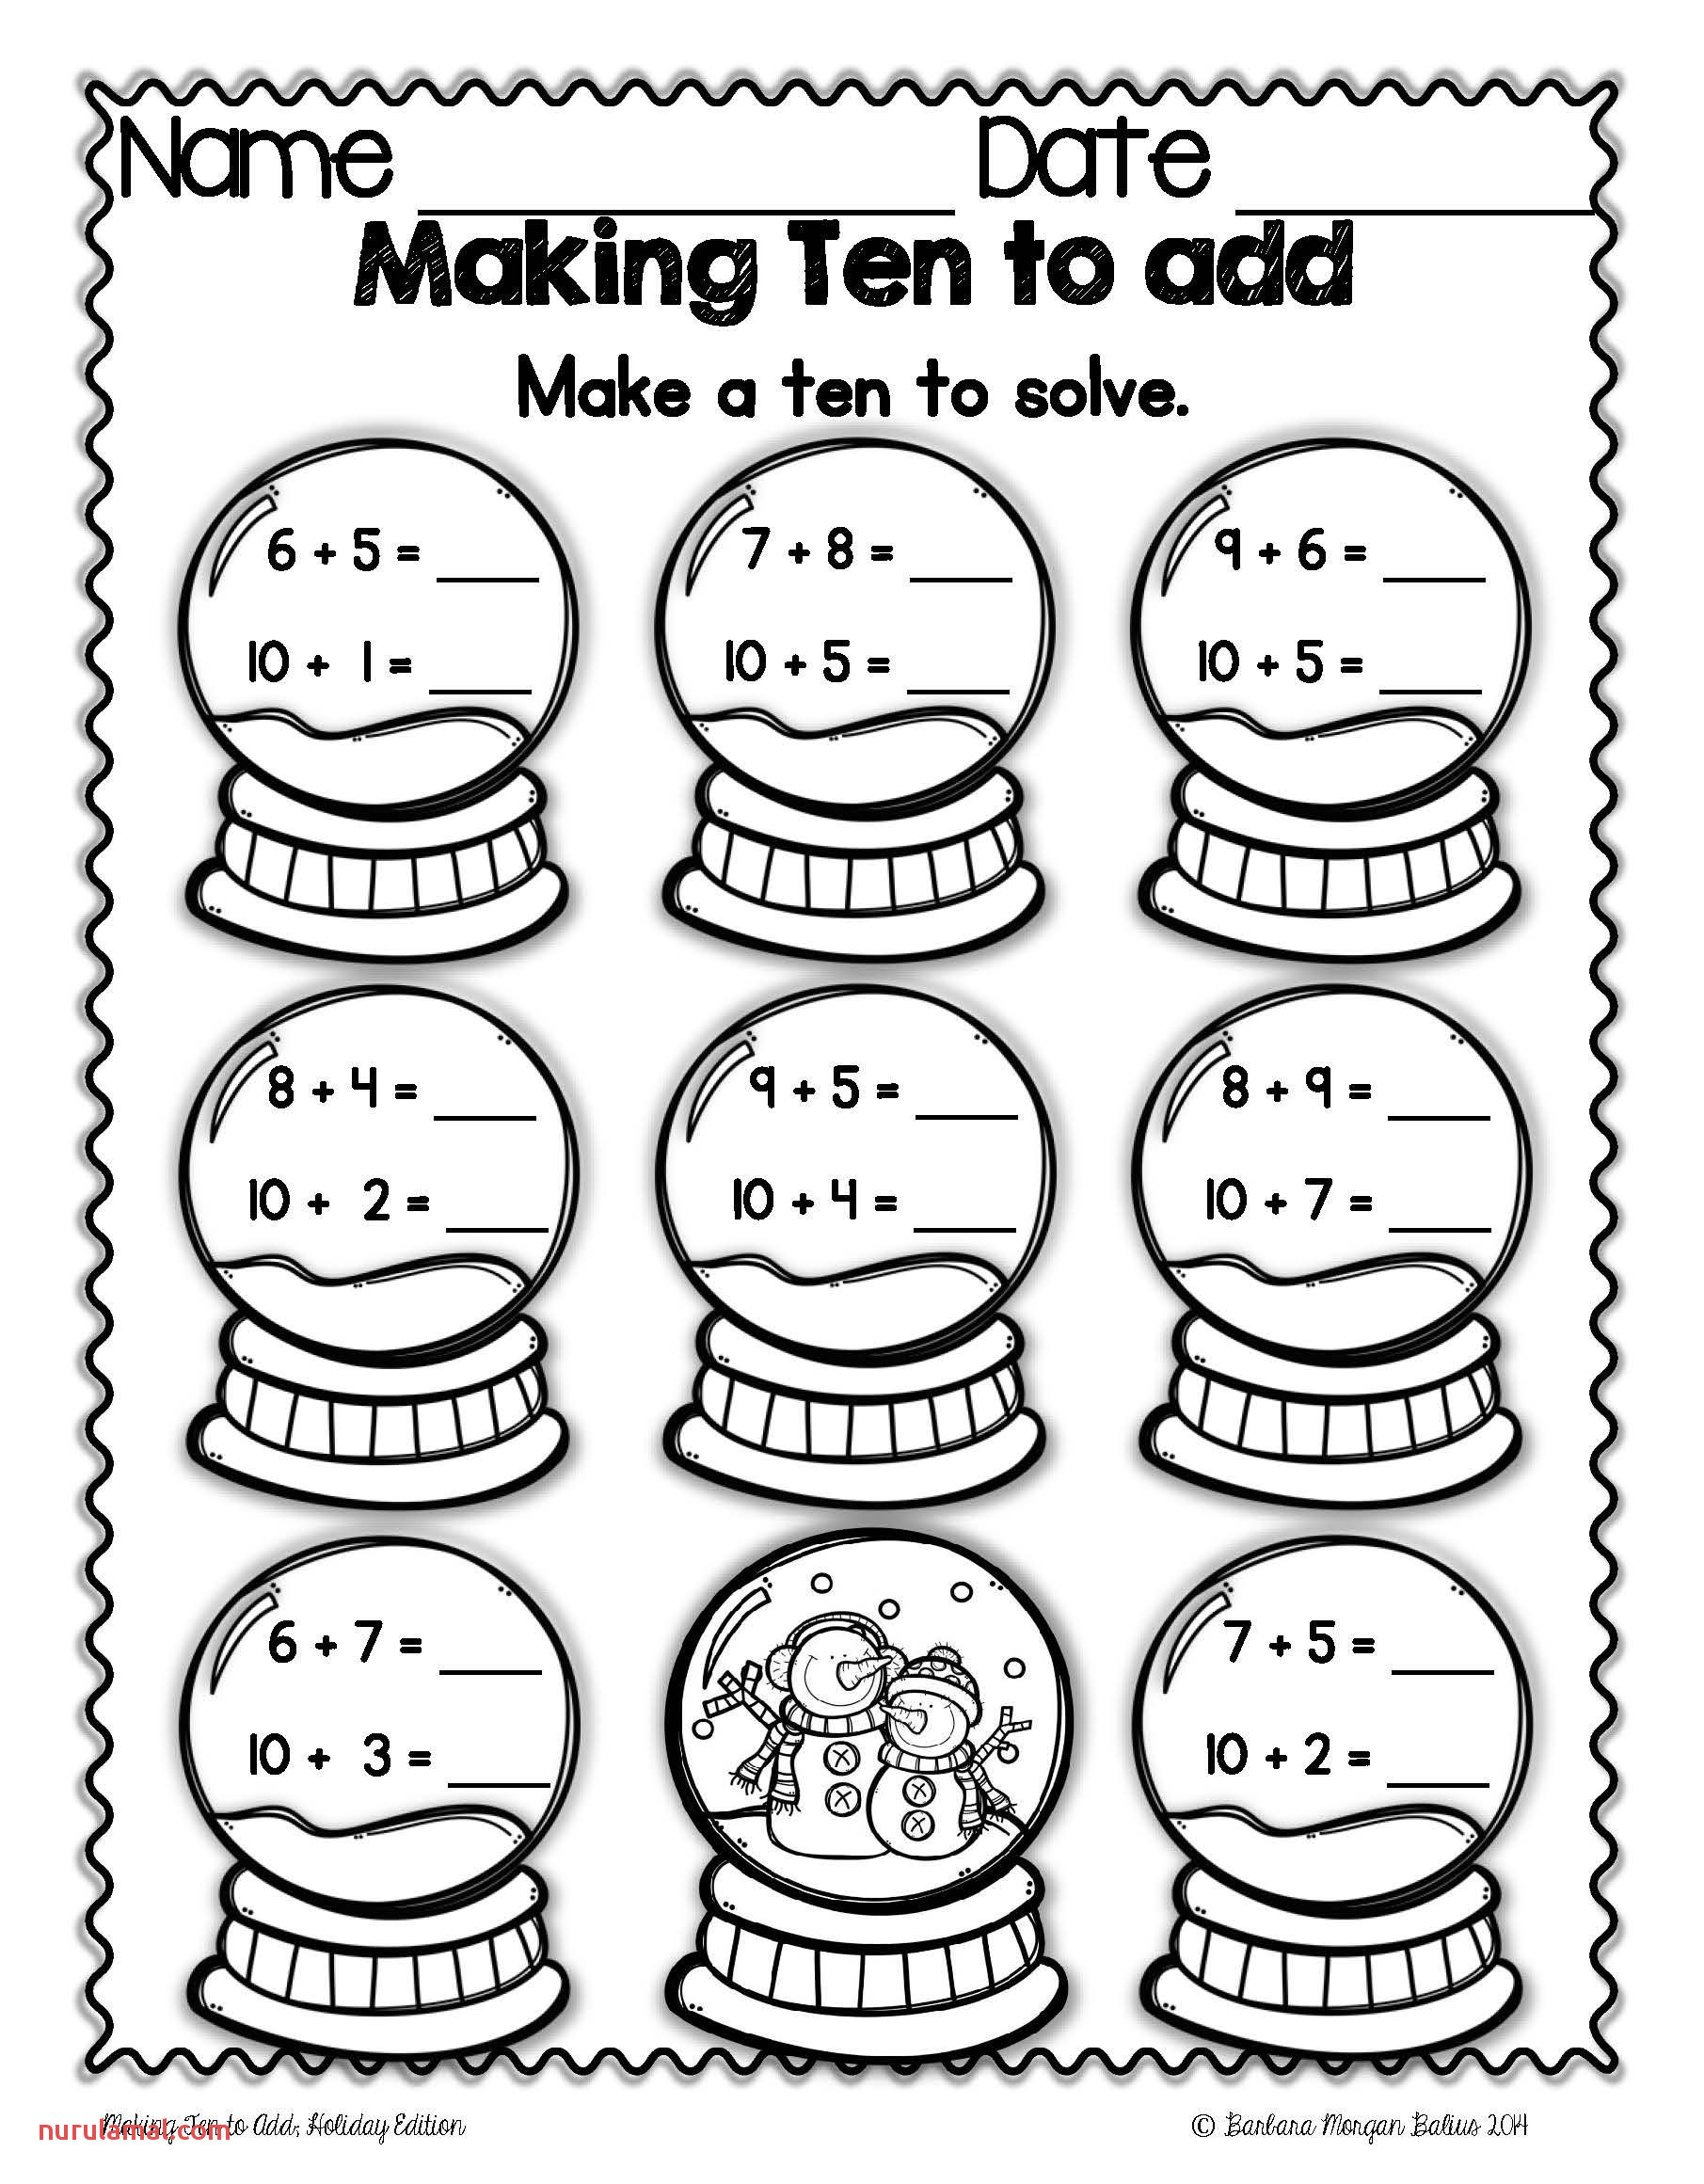 halloween math worksheets 2nd grade fun coloring for year olds synonyms and antonyms kids sgt school english grammar pdf test printable 9th worksheet free multiplication fact fluency 6th